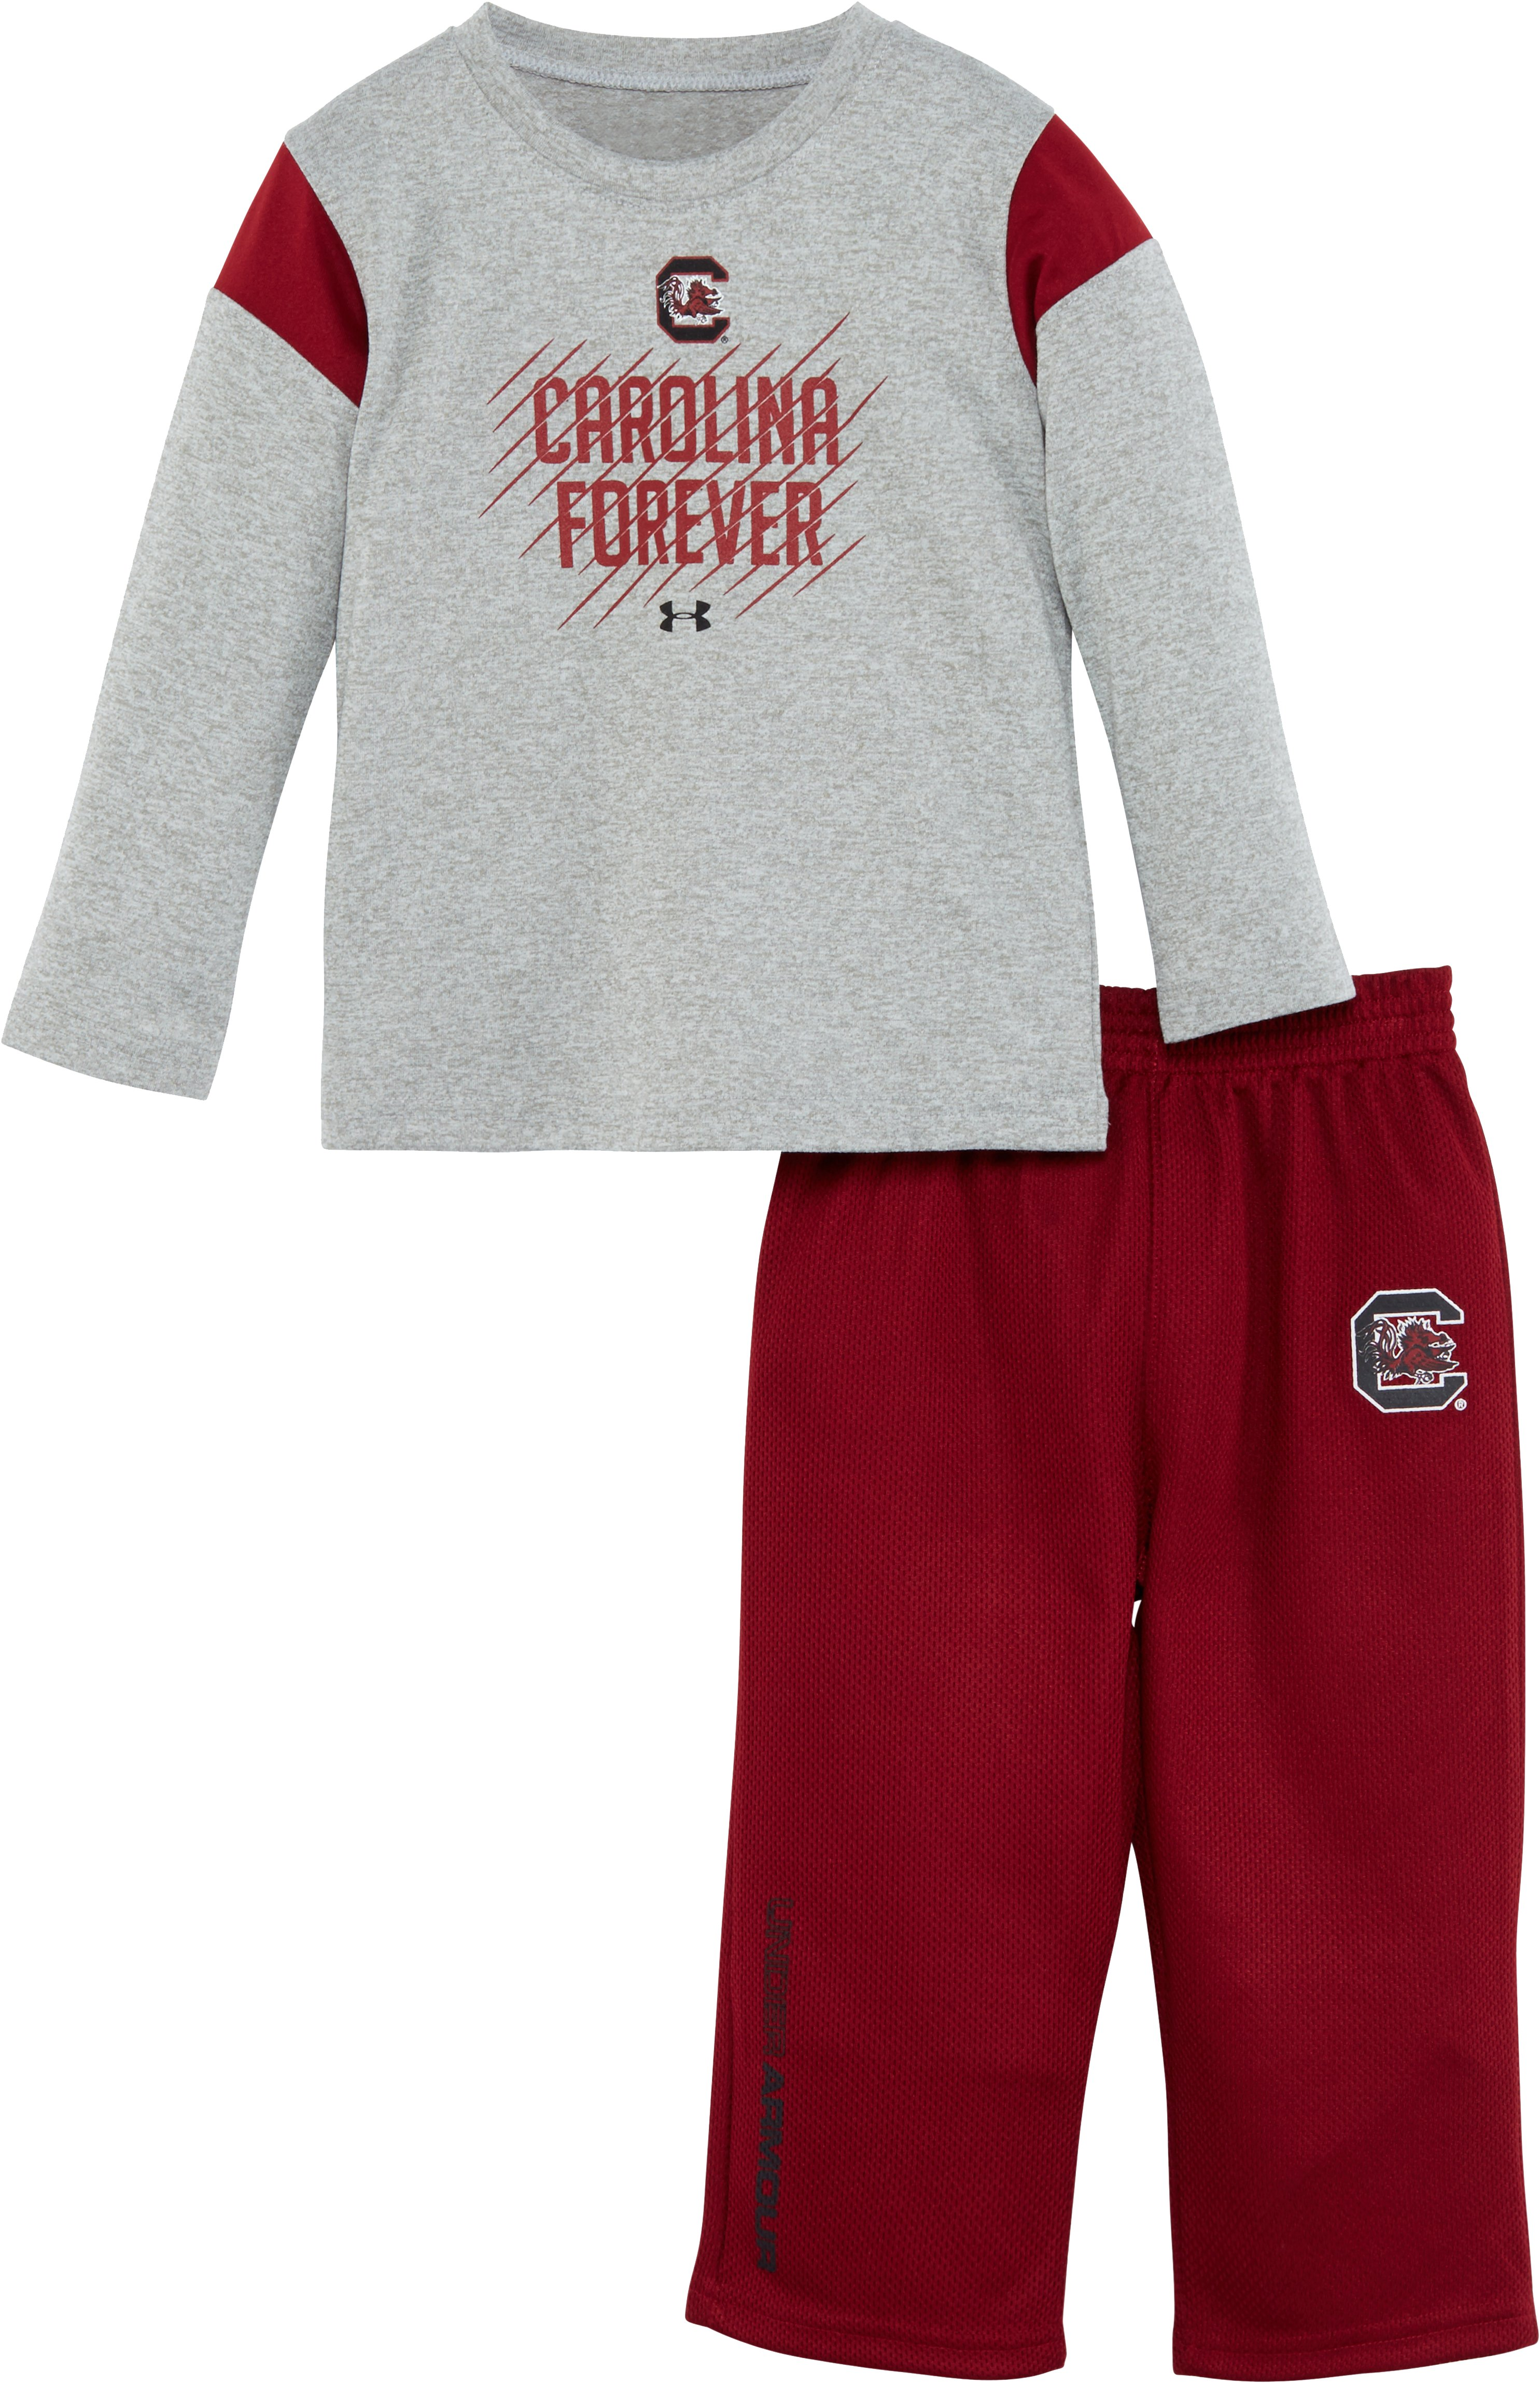 Boys' Infant South Carolina Forever Pant Set, True Gray Heather